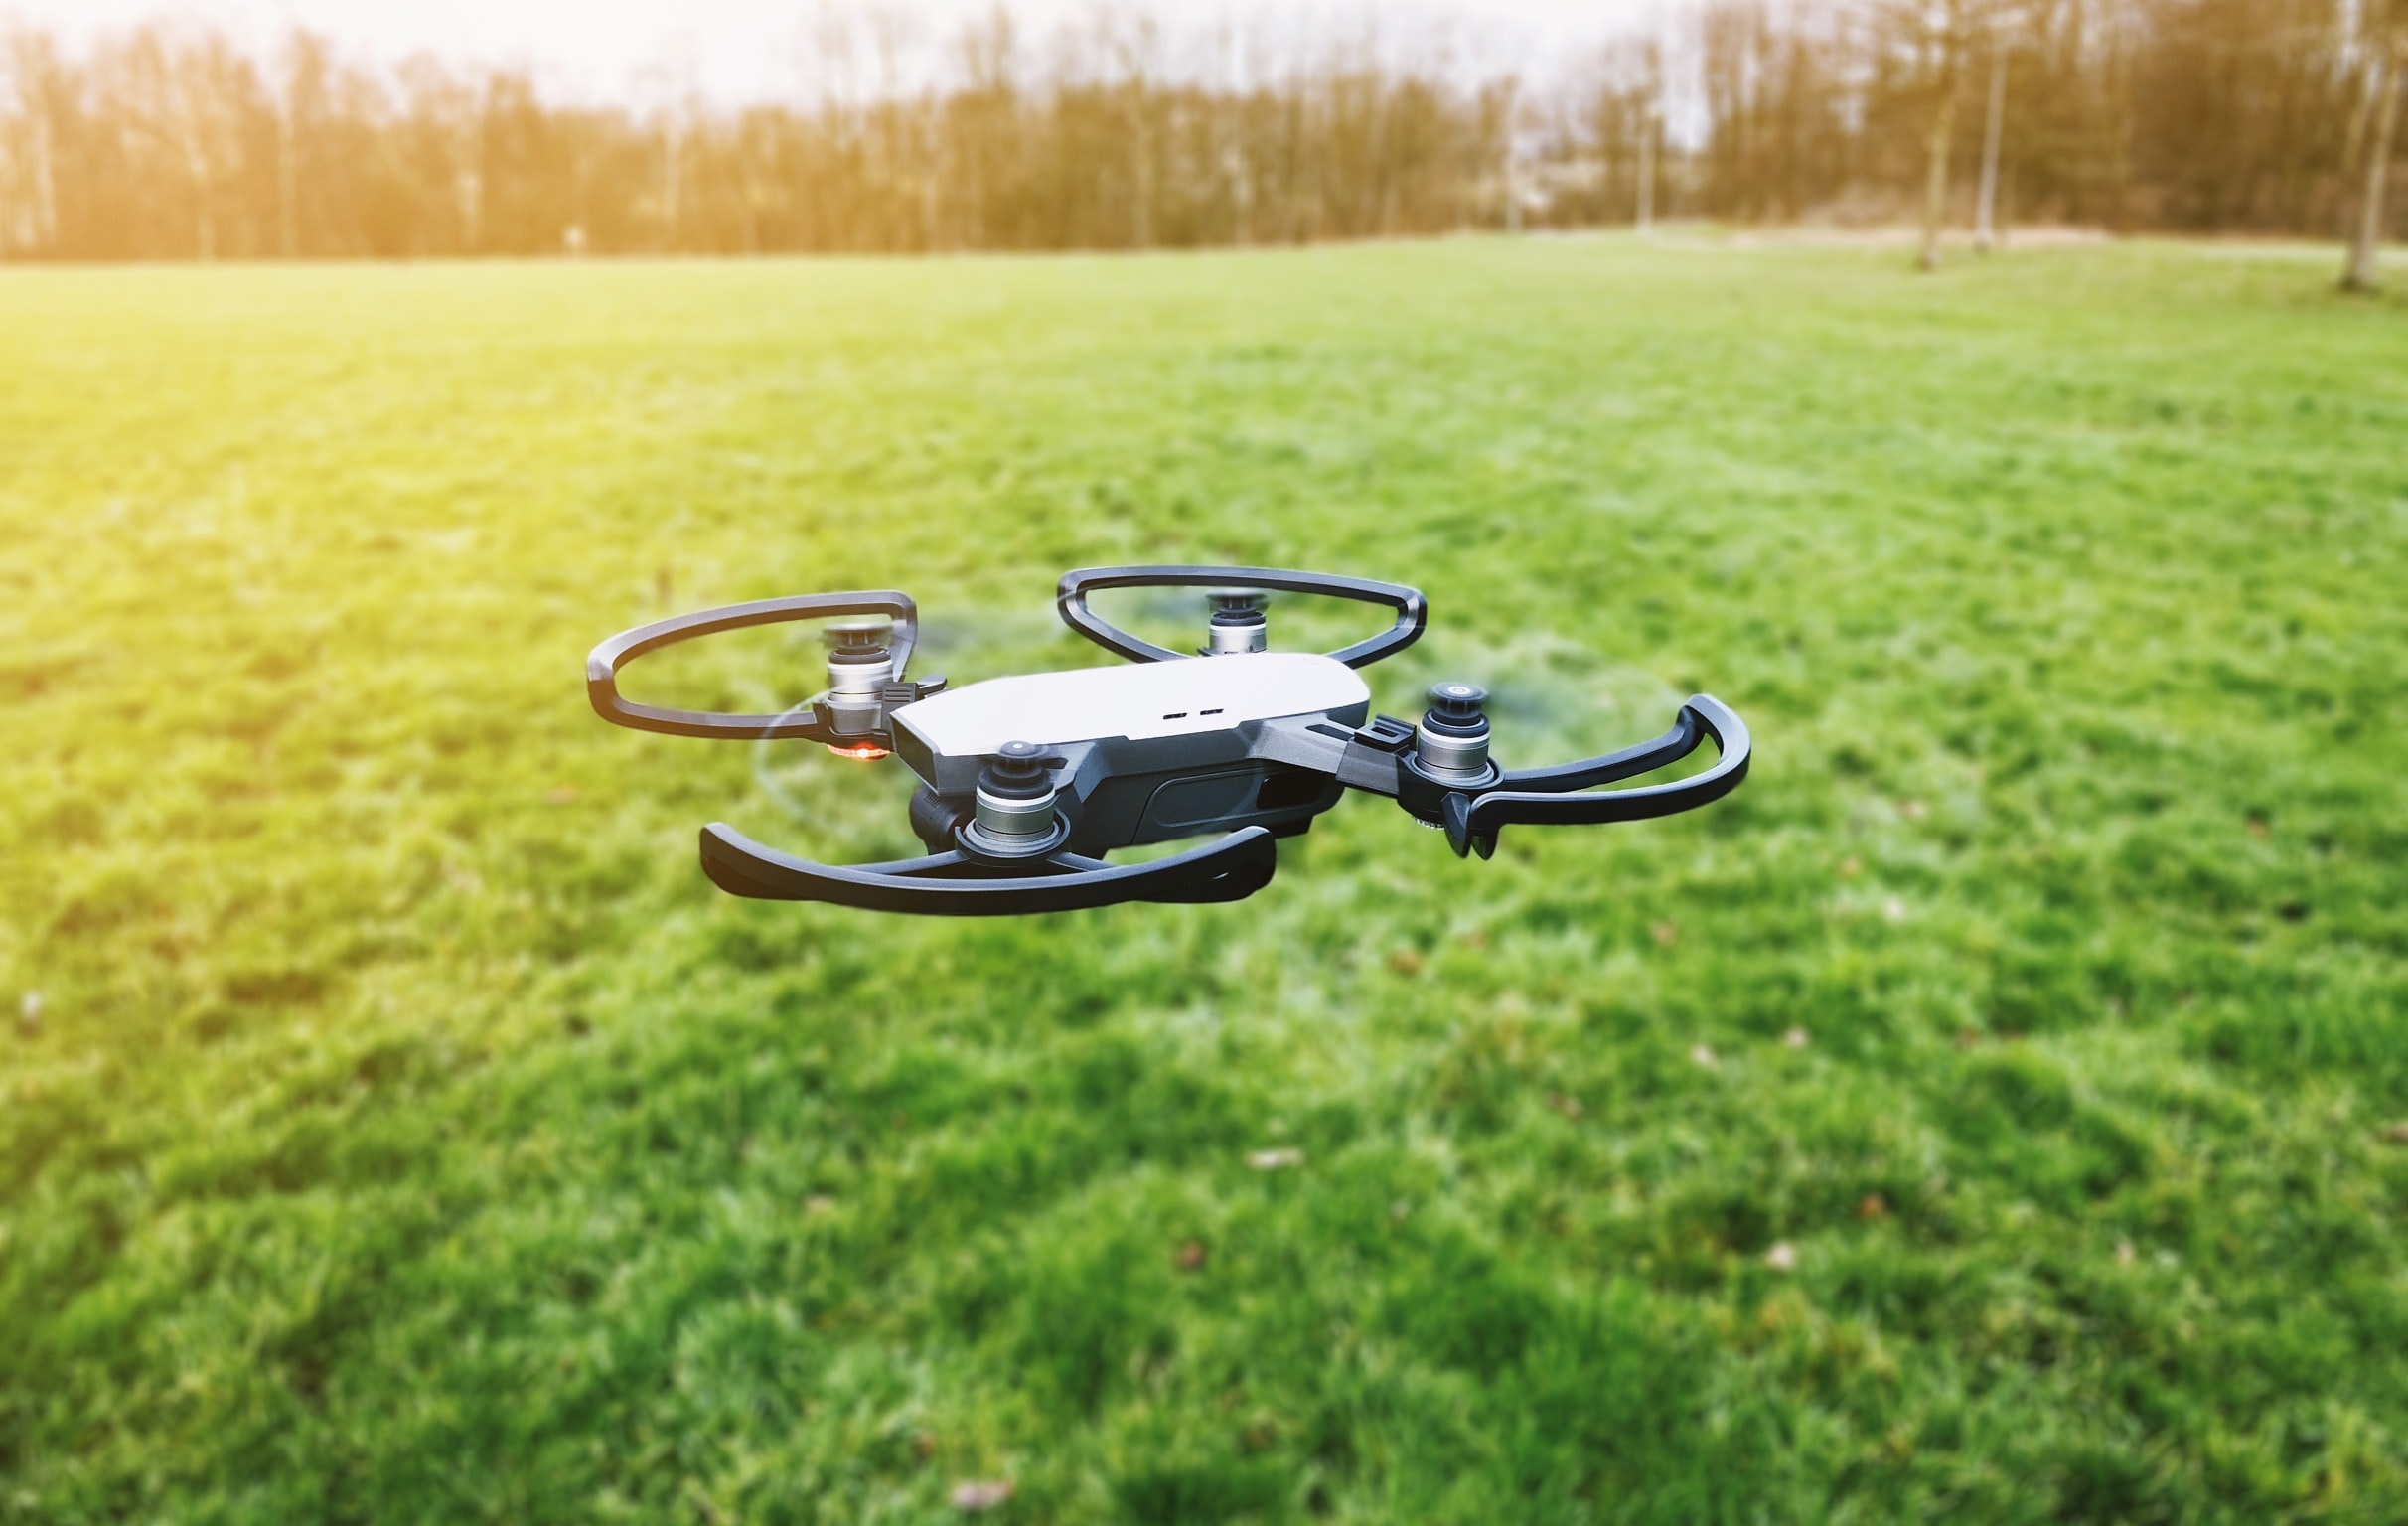 black quadcopter drone on open field